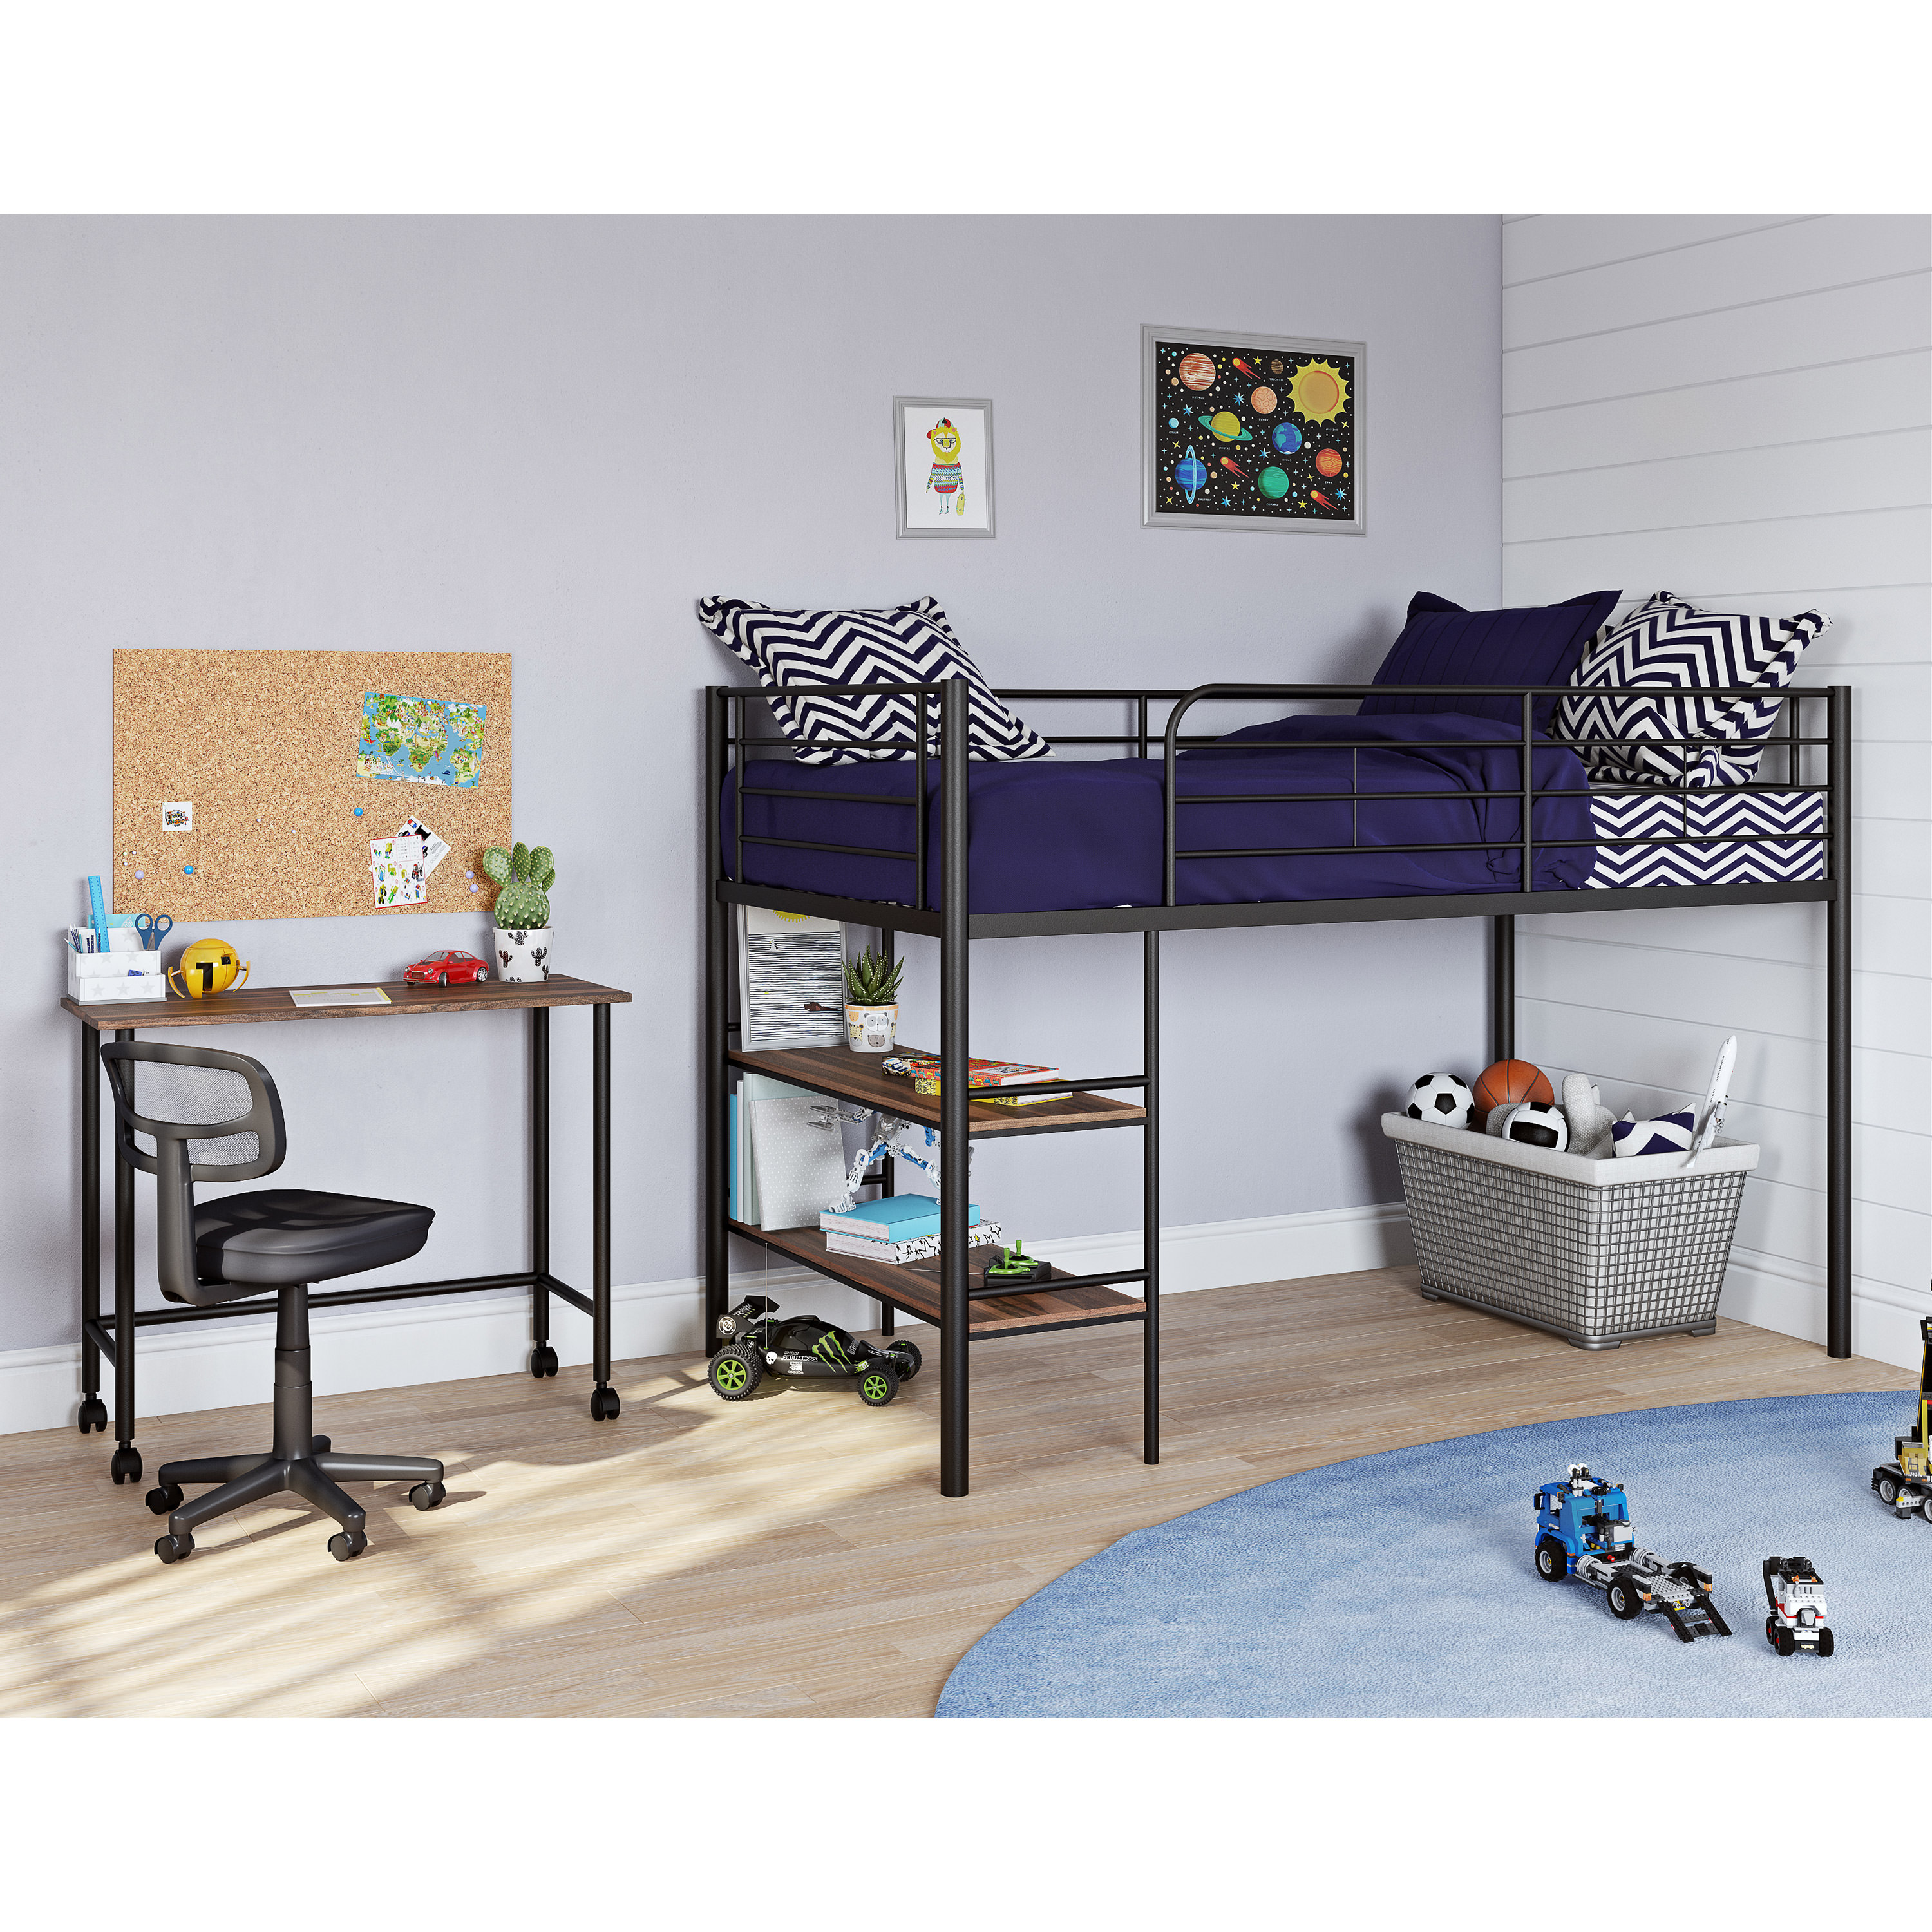 Mainstays Beckett Kids Metal Twin Loft Bed and Rolling Desk